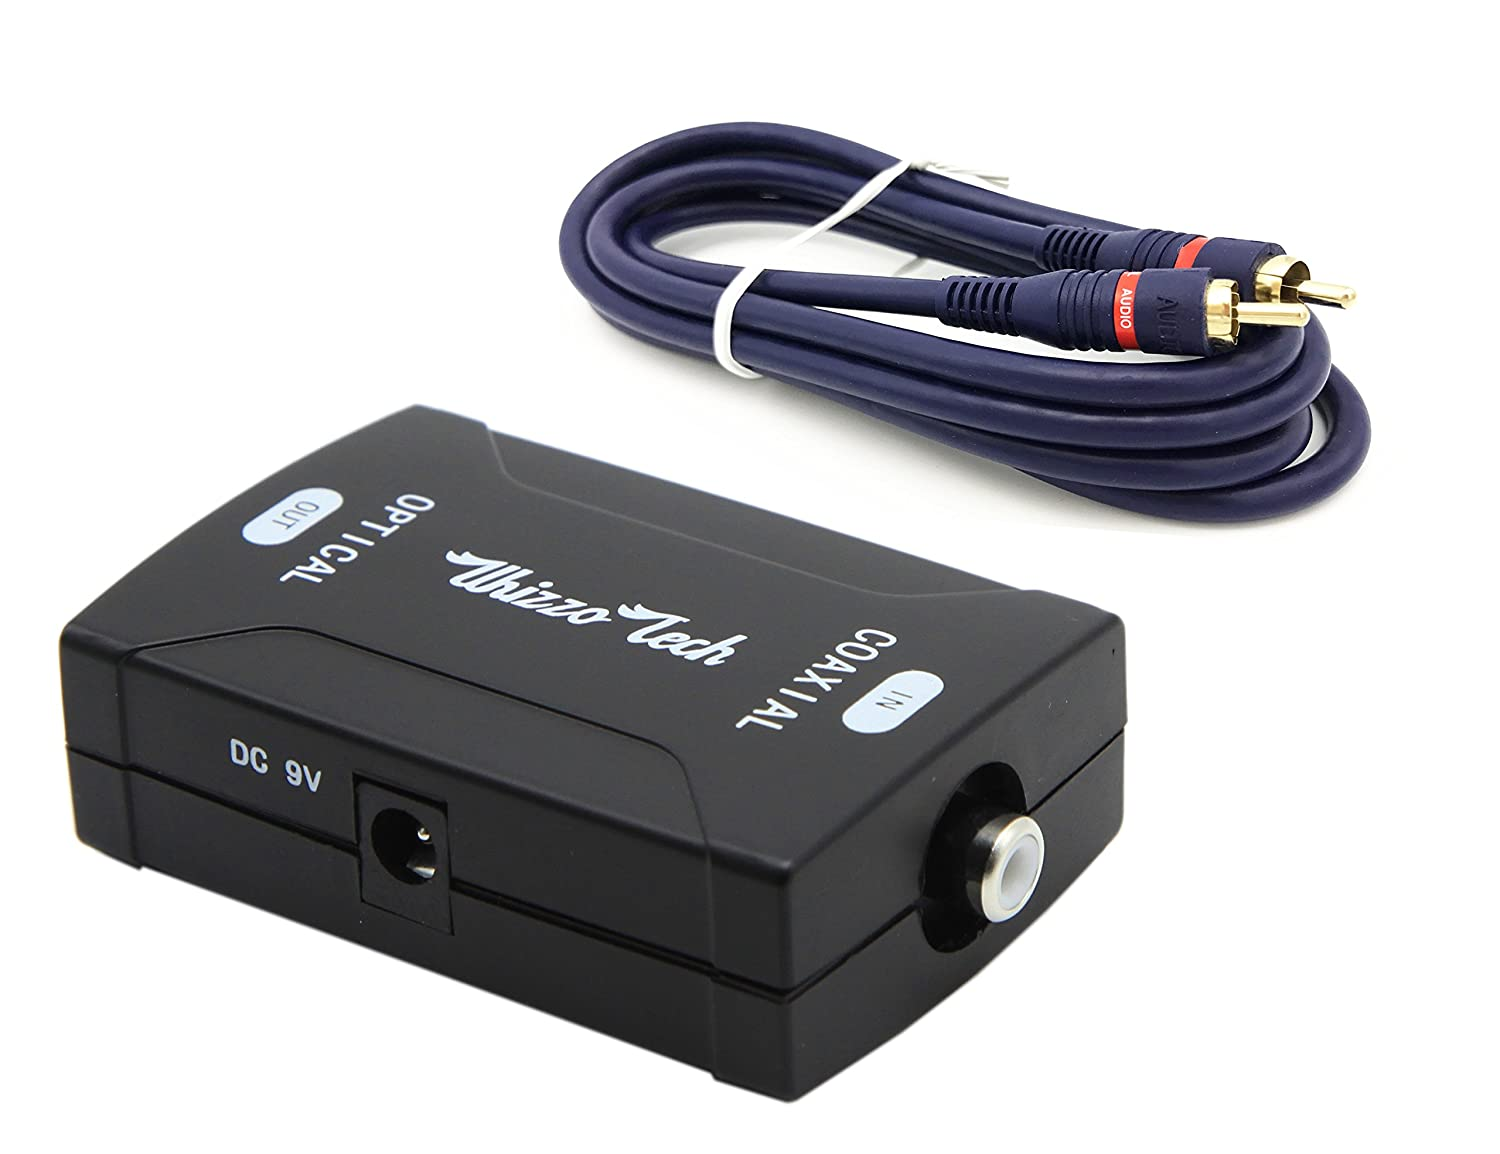 Amazon.com: Whizzotech Coaxial to Toslink Optical Digital Audio Converter 24bit/192K HD sampling with Digital Audio Coax Cable (Coaxial to Optical & Cable): ...